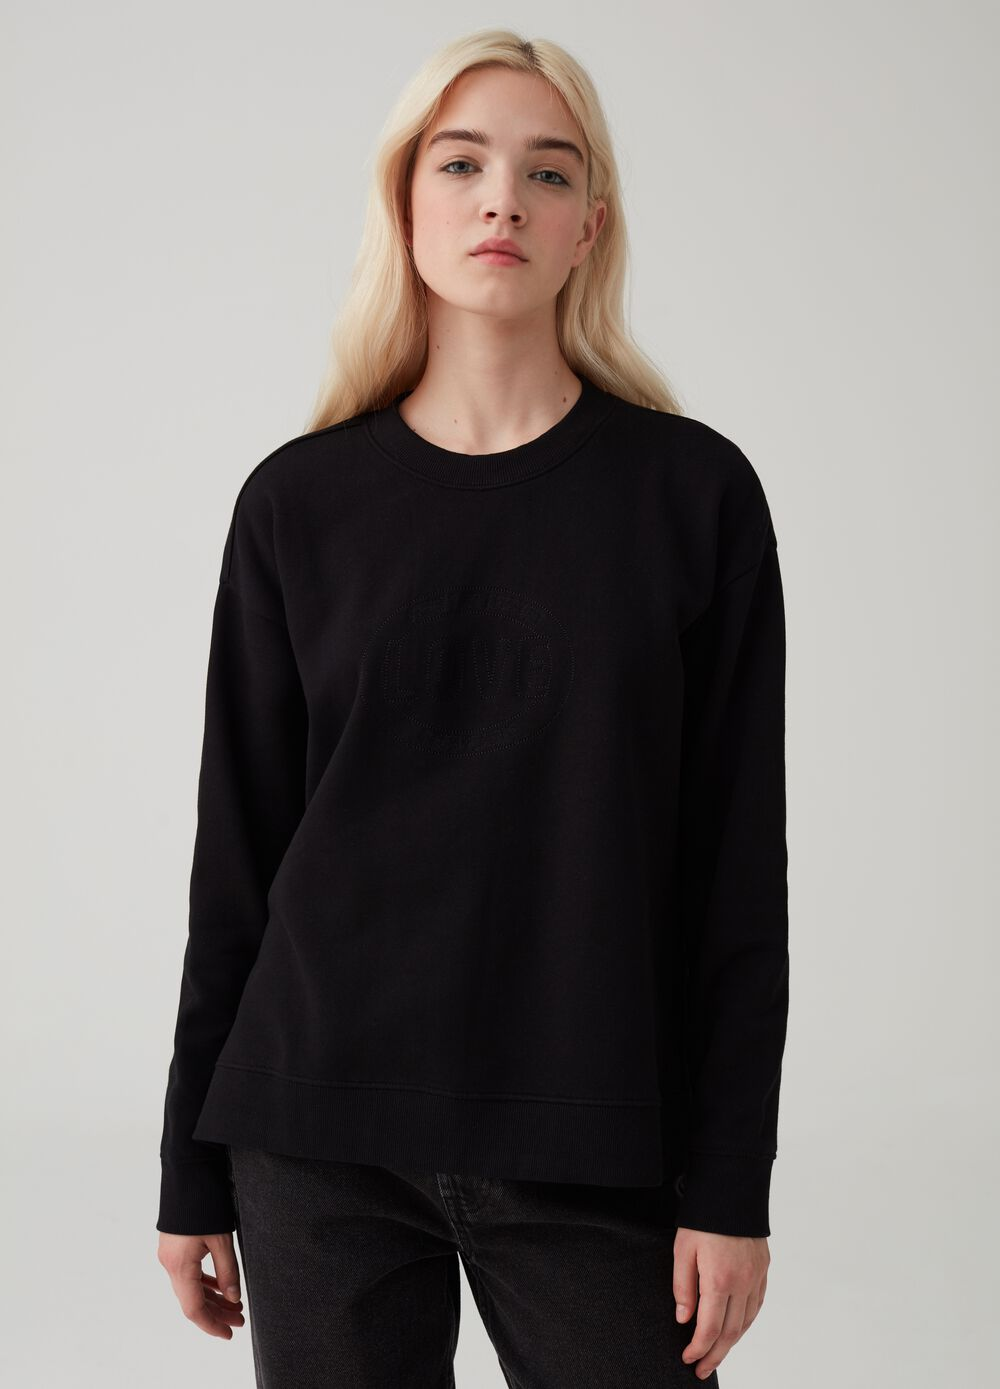 Stretch 100% organic cotton sweatshirt with embroidery